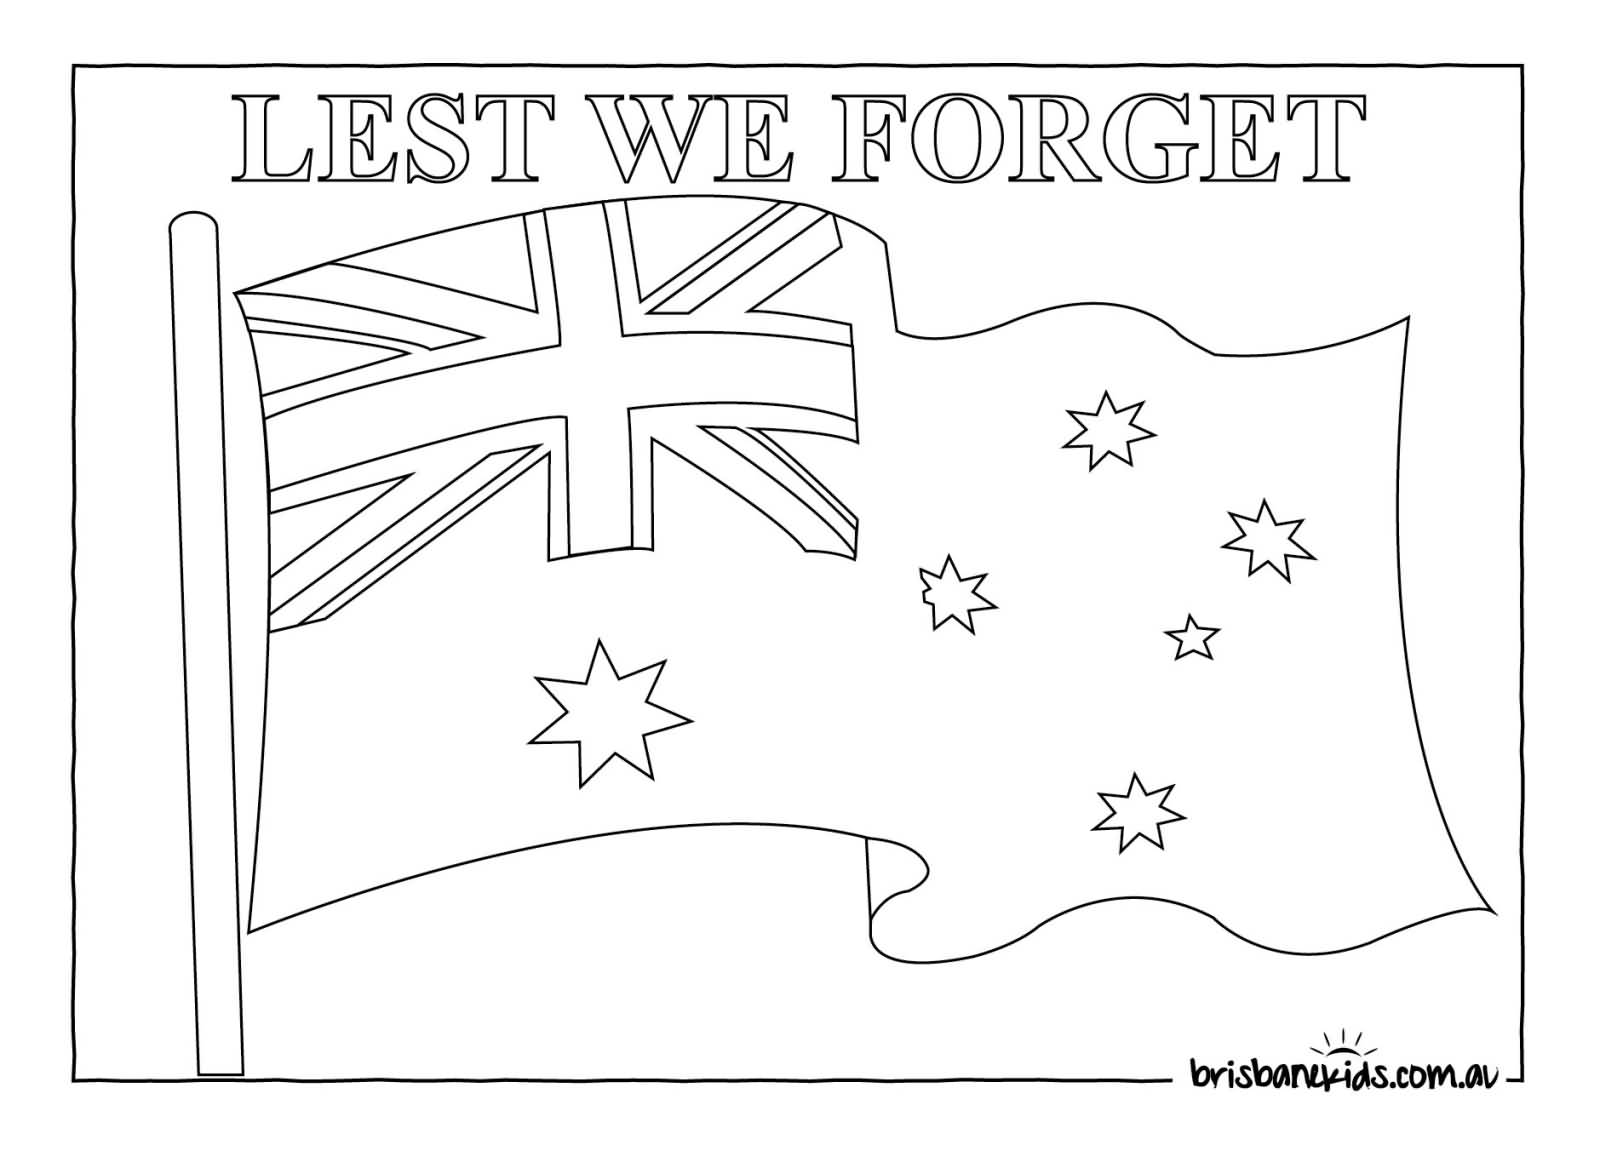 anzac soldier coloring pages - photo#27